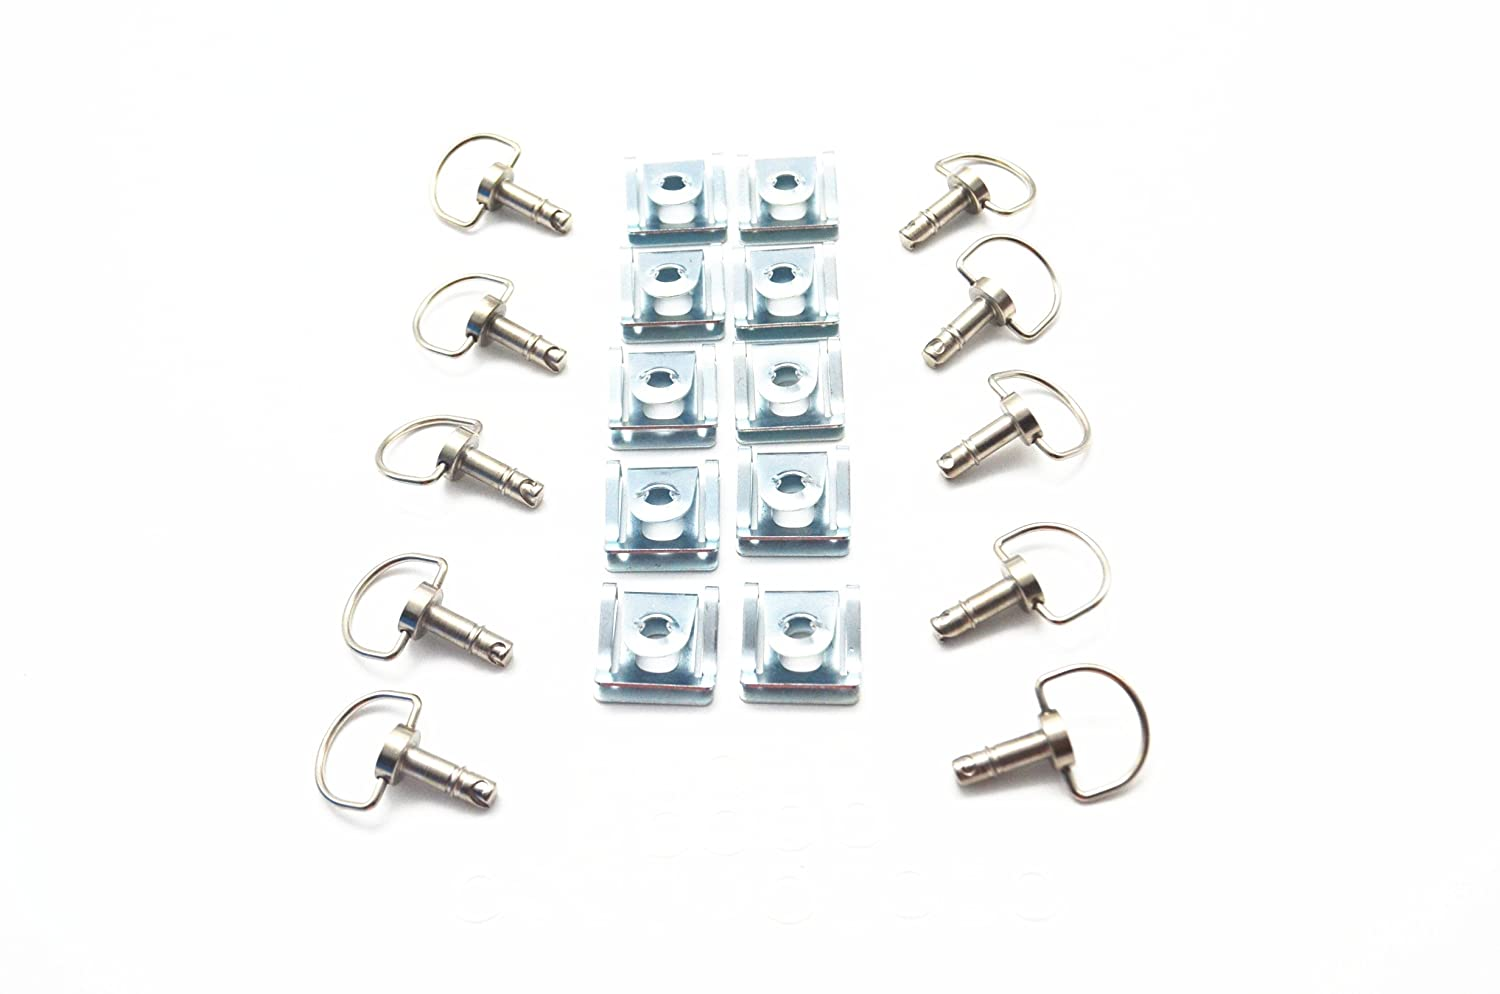 10 Pack MOTO4U Dzus Style Quick Release D-Ring Race Fasteners 19mm Sliver